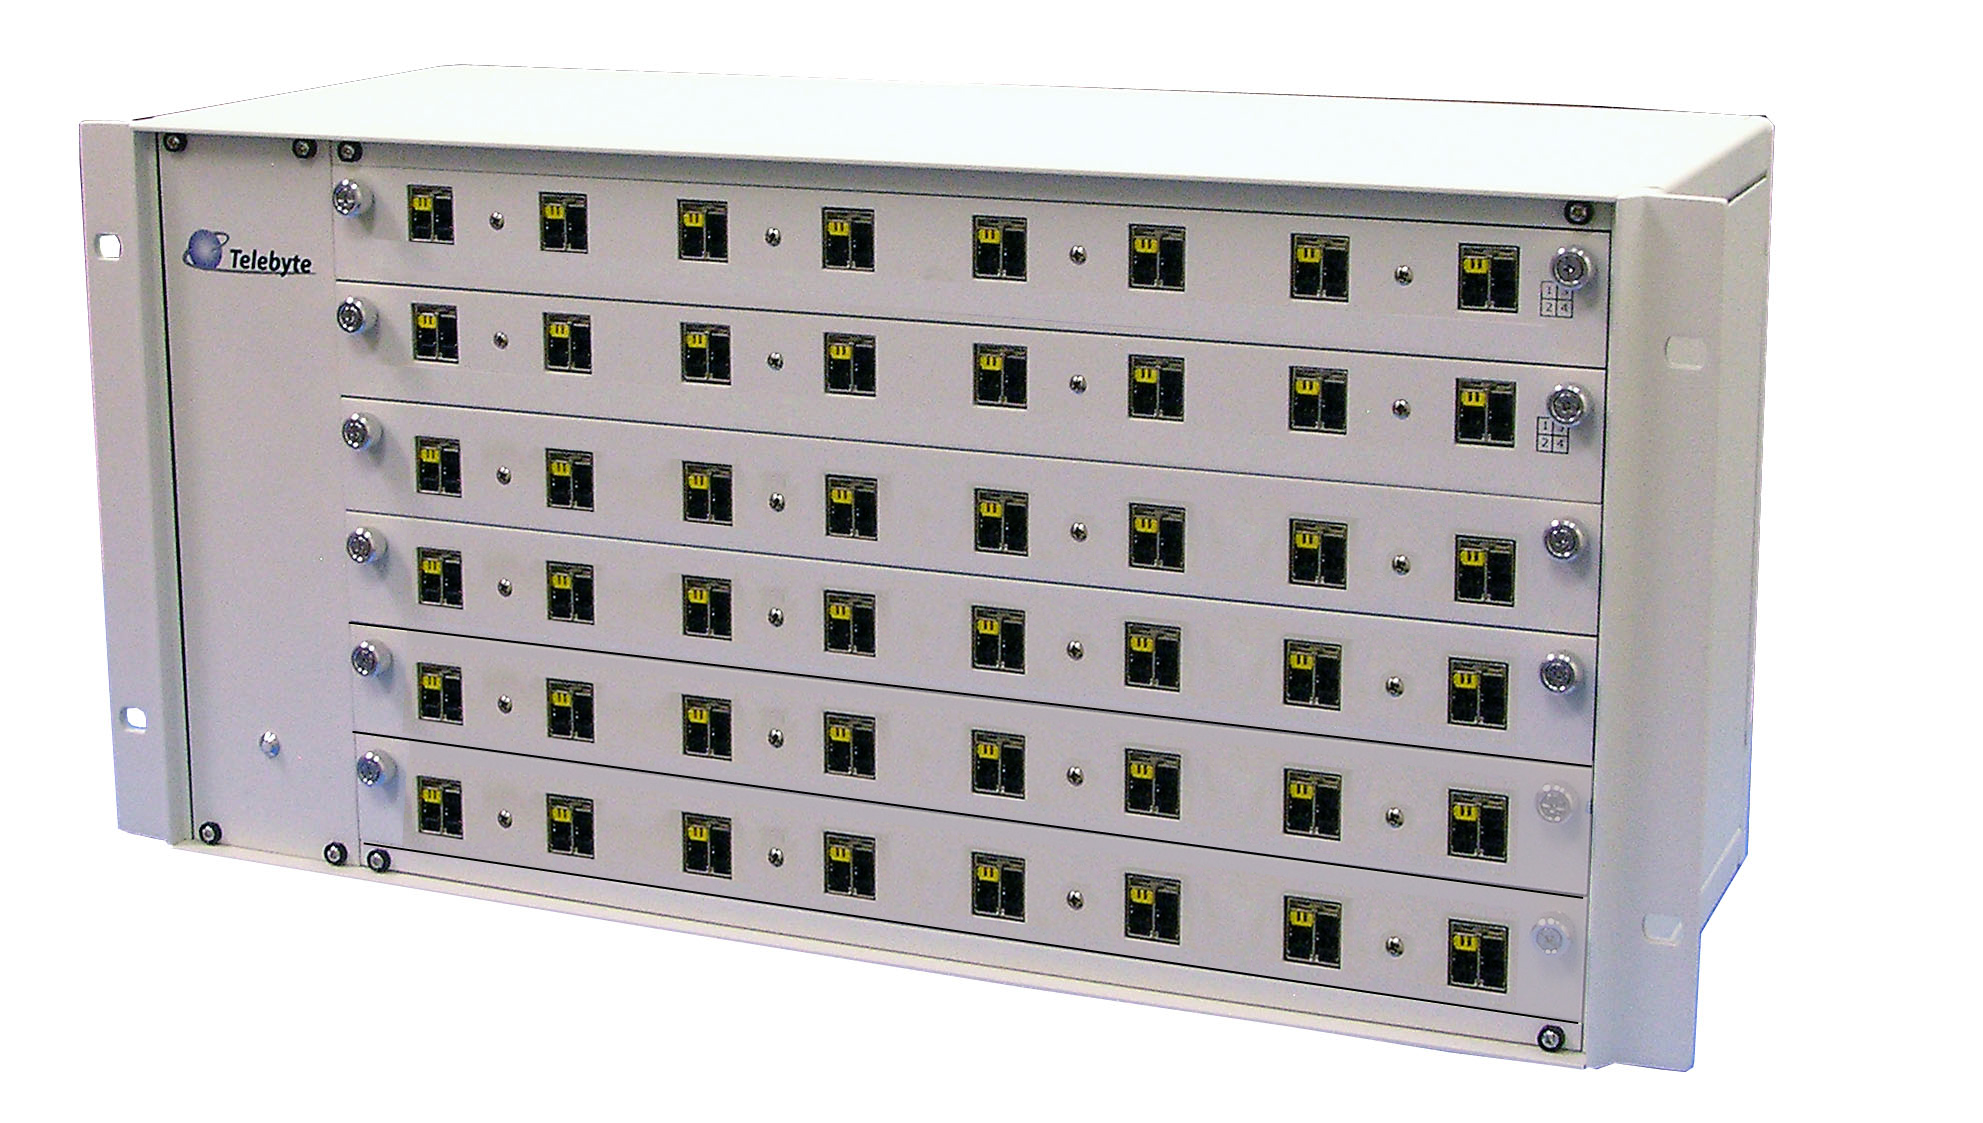 Telebyte Model 600 Switching Matrix Series automates testing of 10BASE-T1L and 10BASE-T1S and supports PoDL.